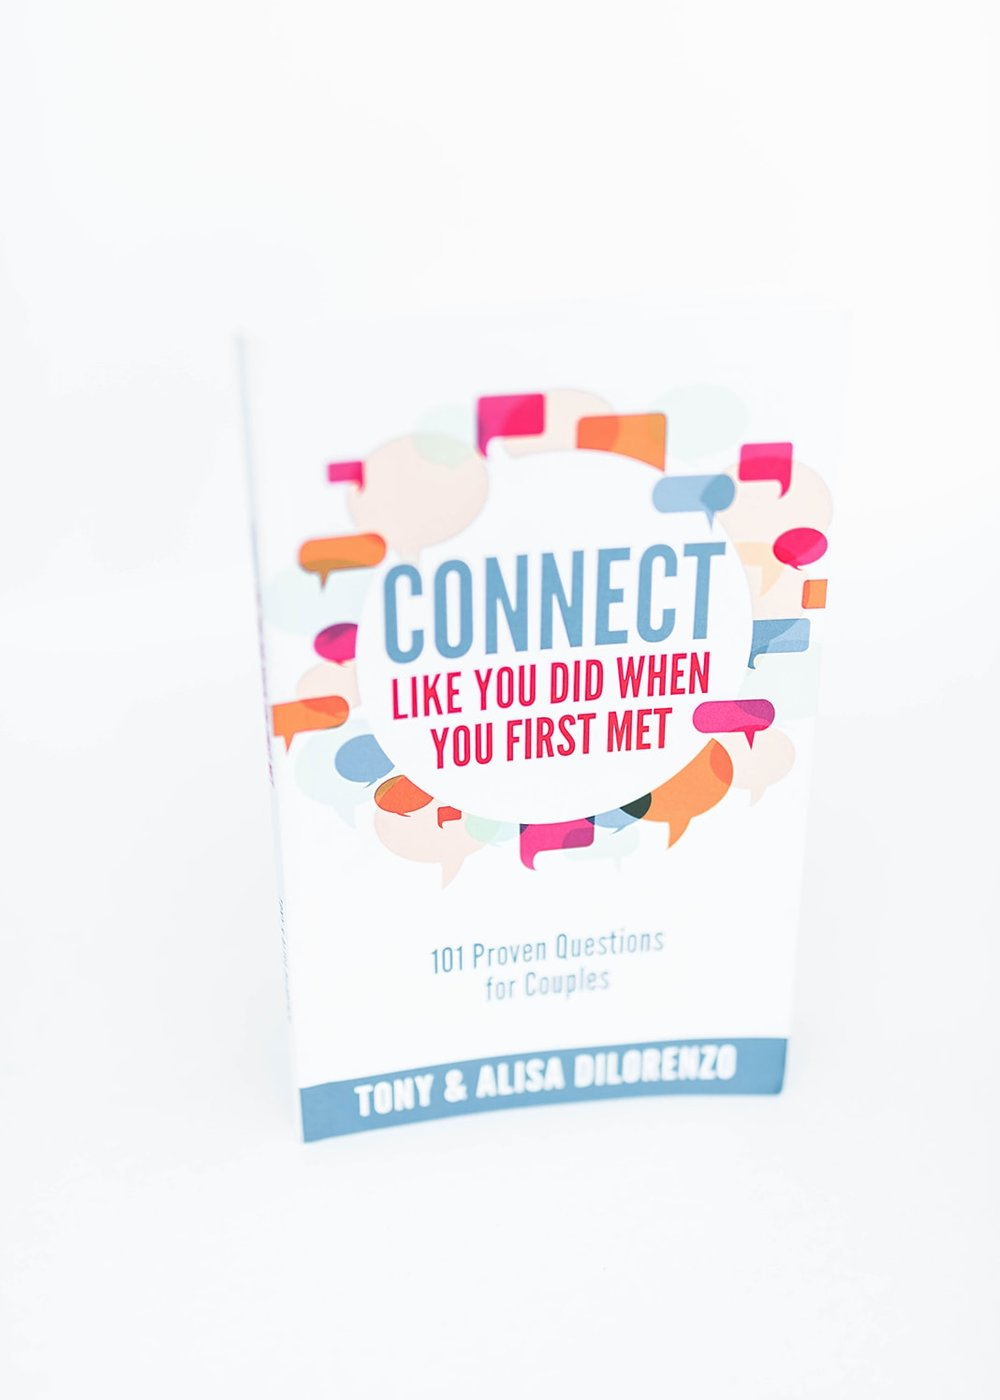 Connect Like You Did When You First Met